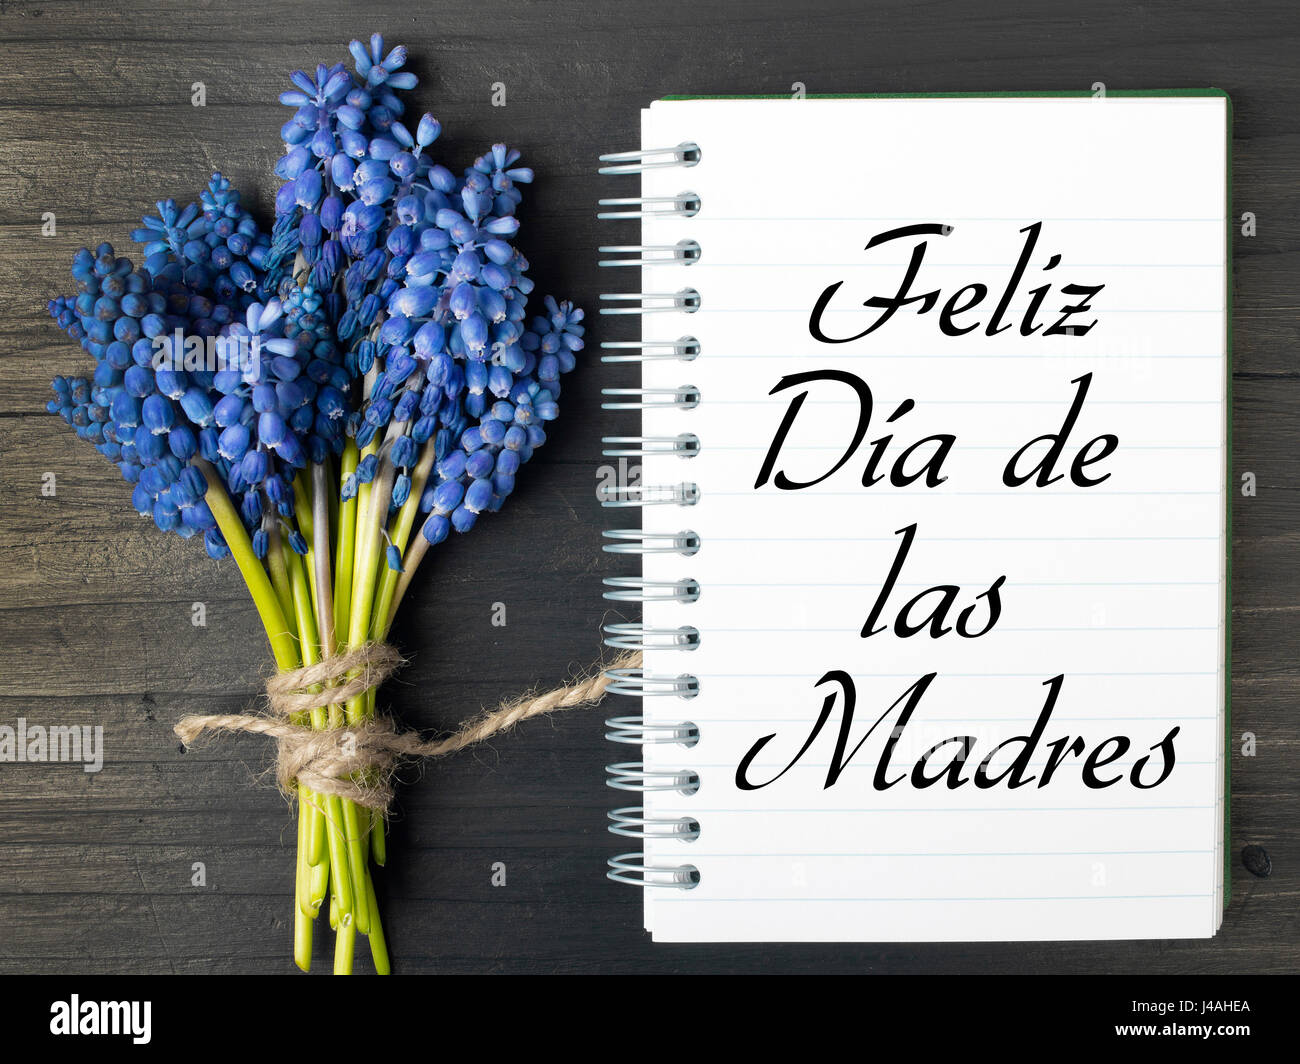 Mothers Day Card Spanish Words Stock Photos Mothers Day Card